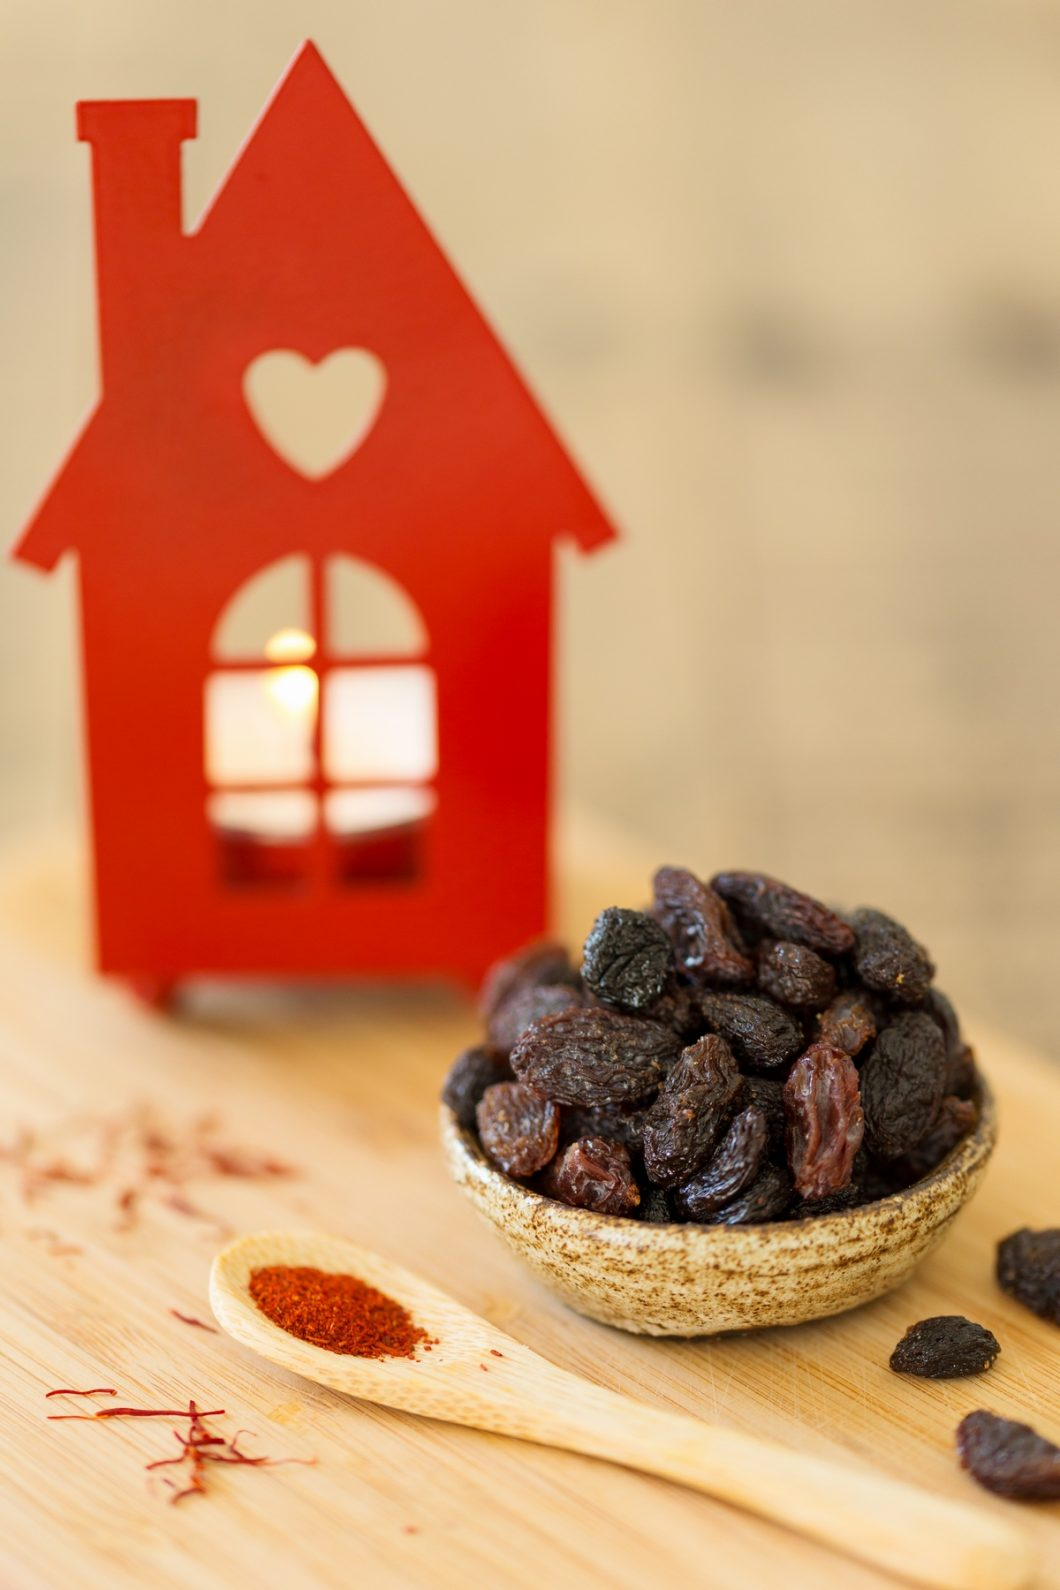 Bowl of raisins, saffron on a spoon, house-shaped candle holder.